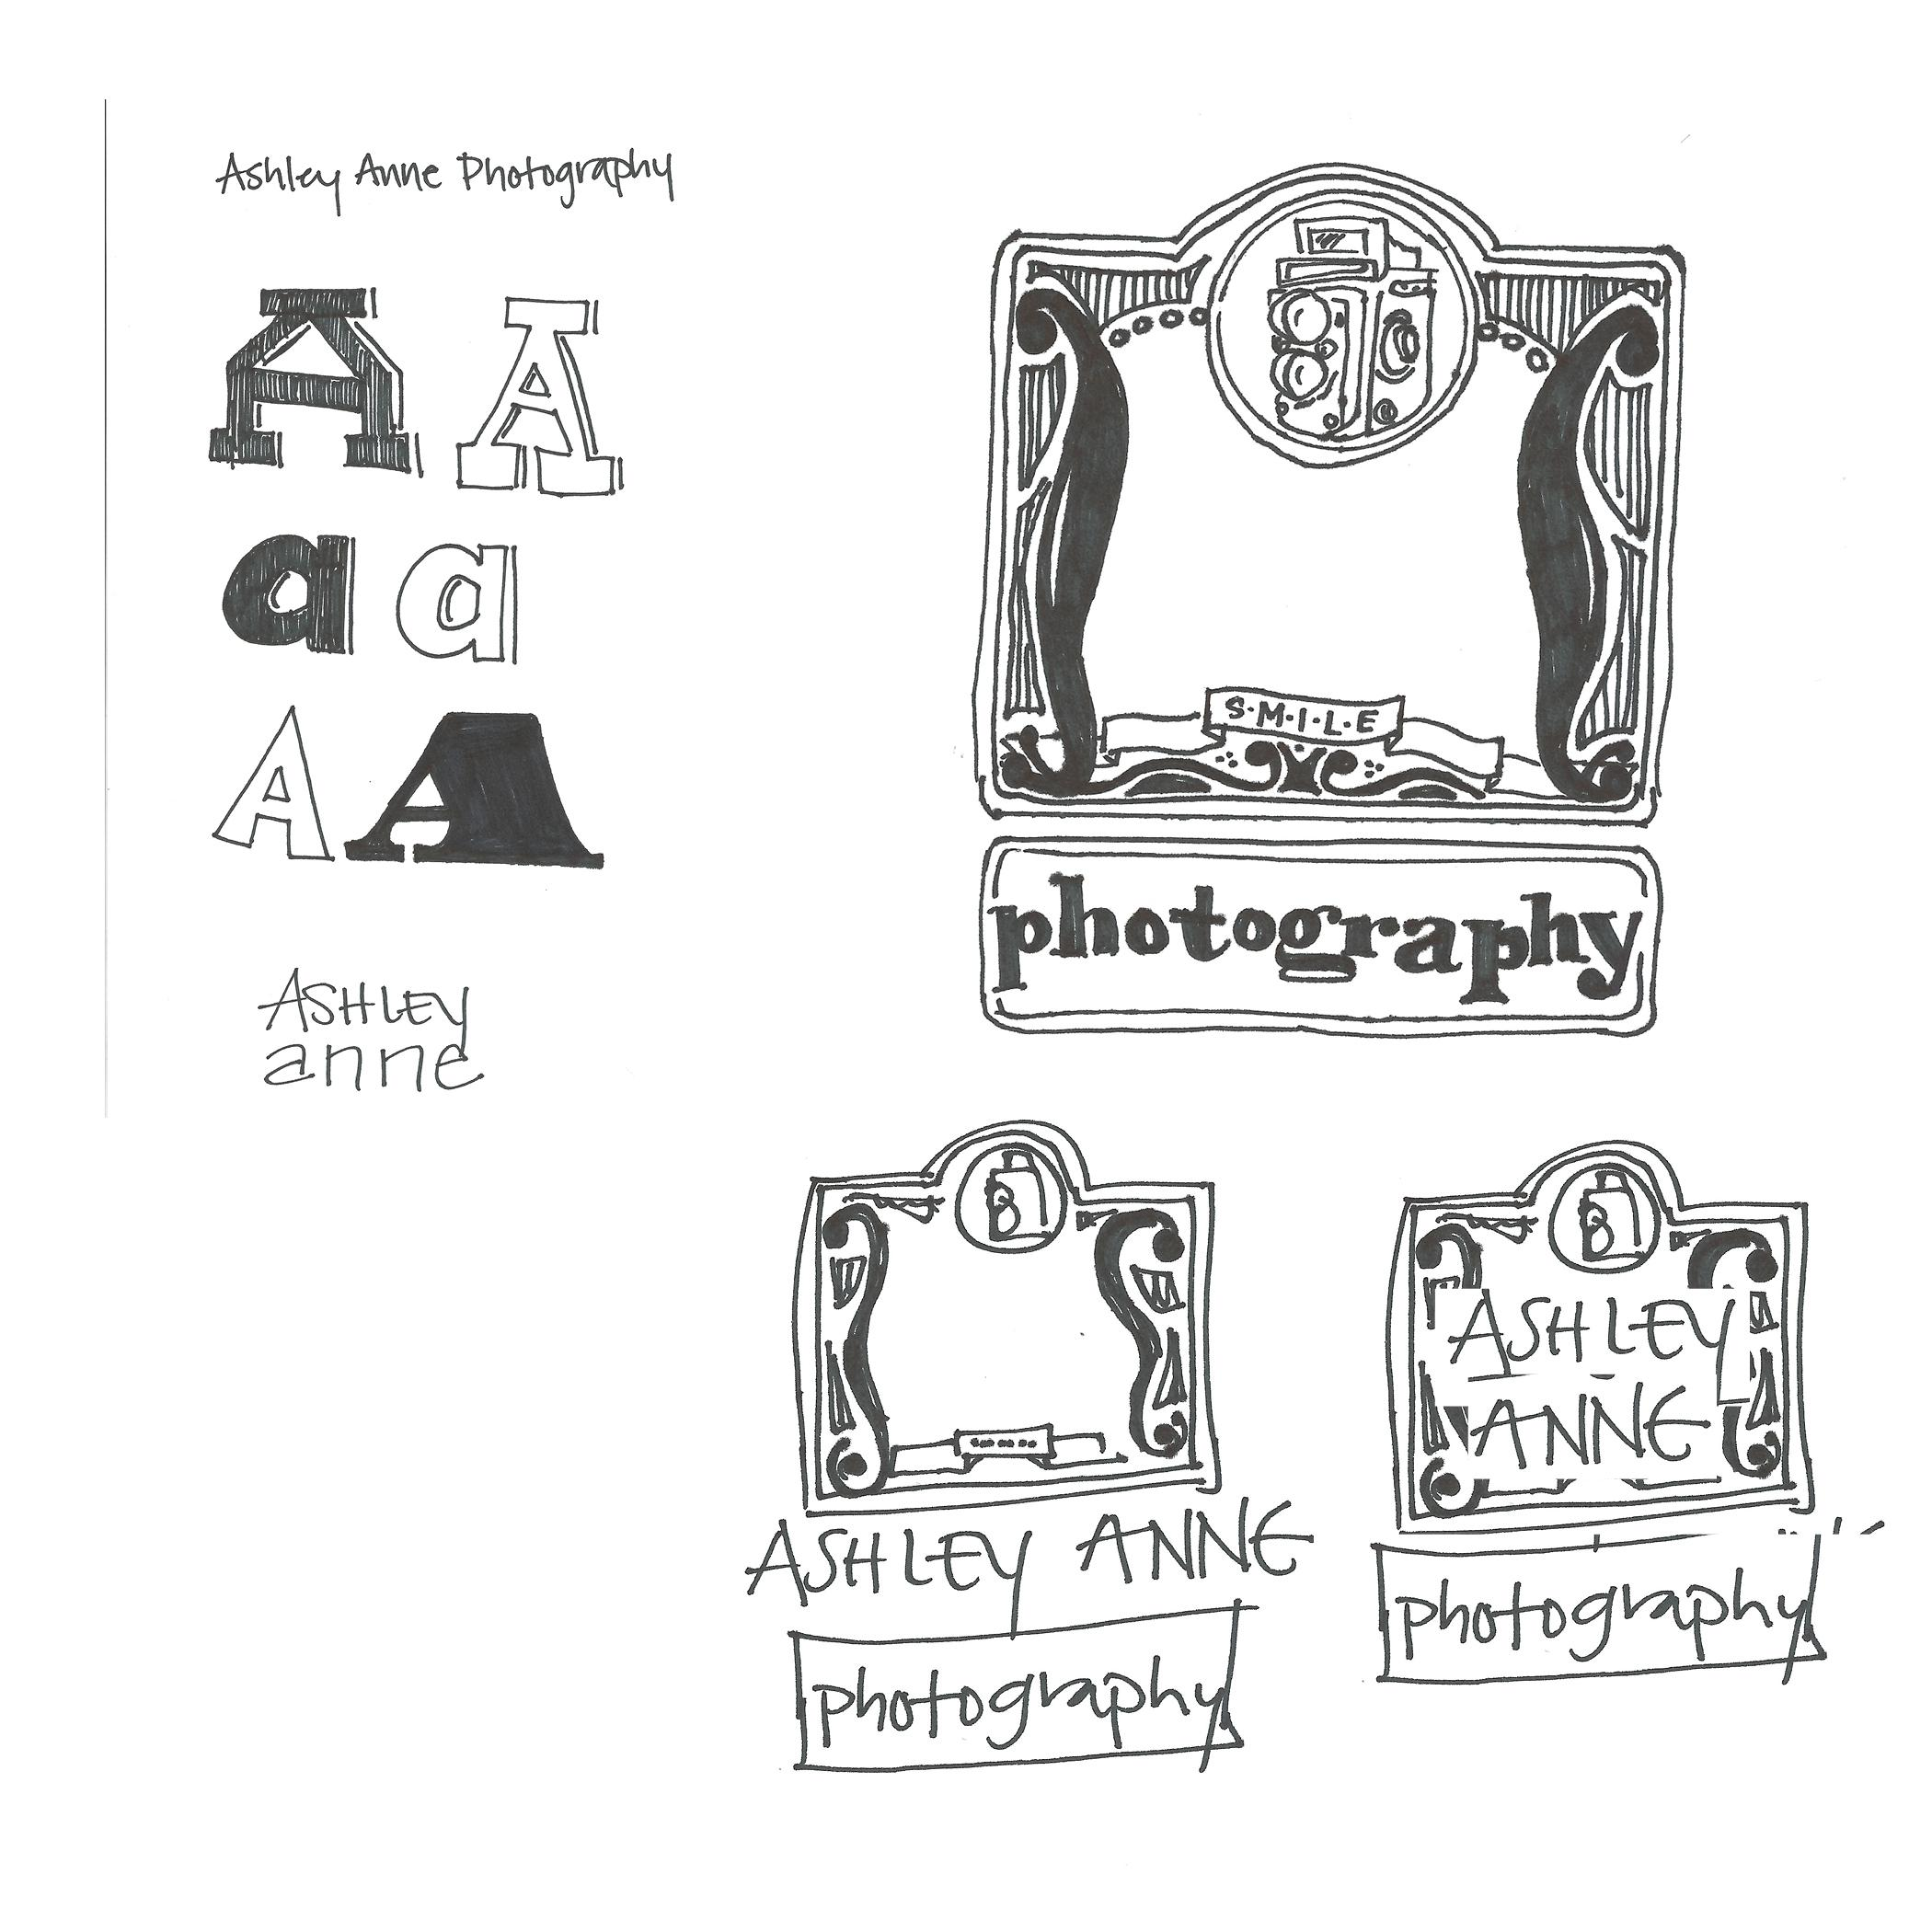 Photography company brandscheming - image 3 - student project